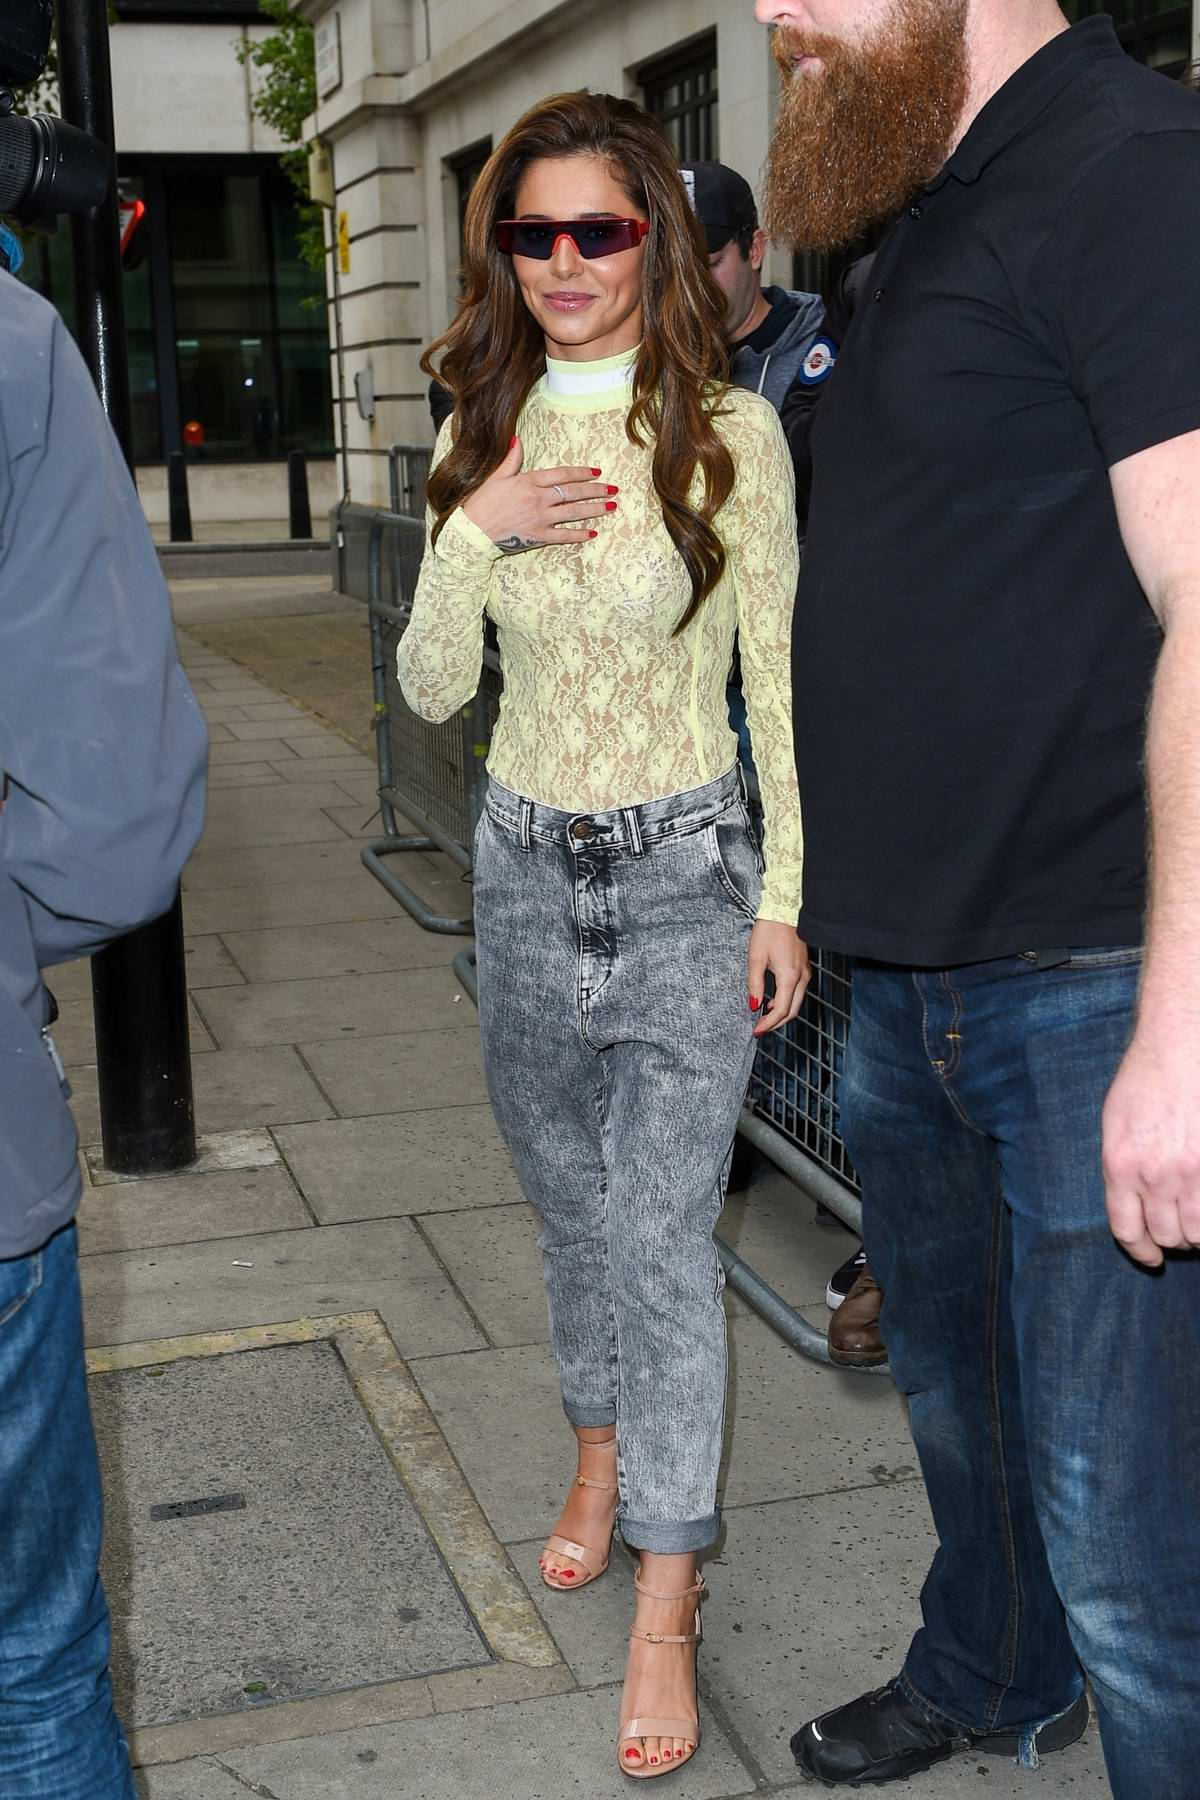 Cheryl Tweedy greets fans as she leaves BBC Radio 2 studios in London, UK